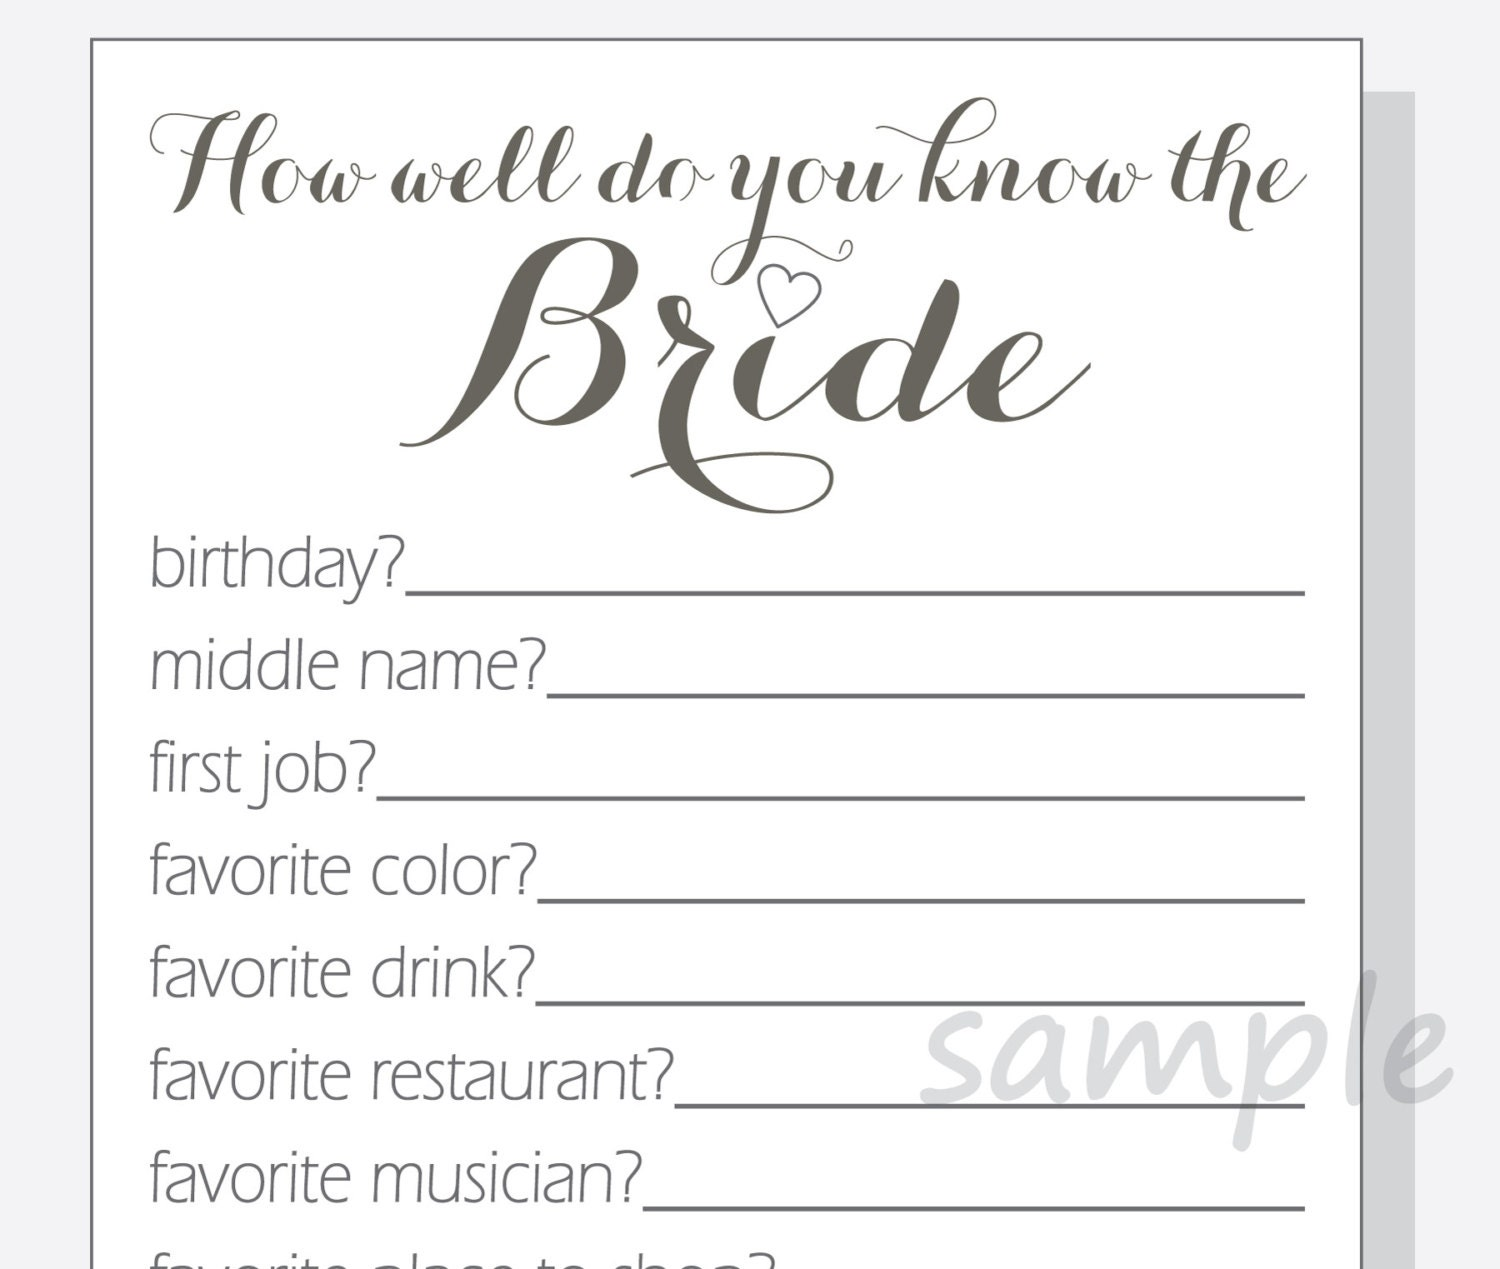 Diy how well do you know the bride printable by lilcubbyprintables